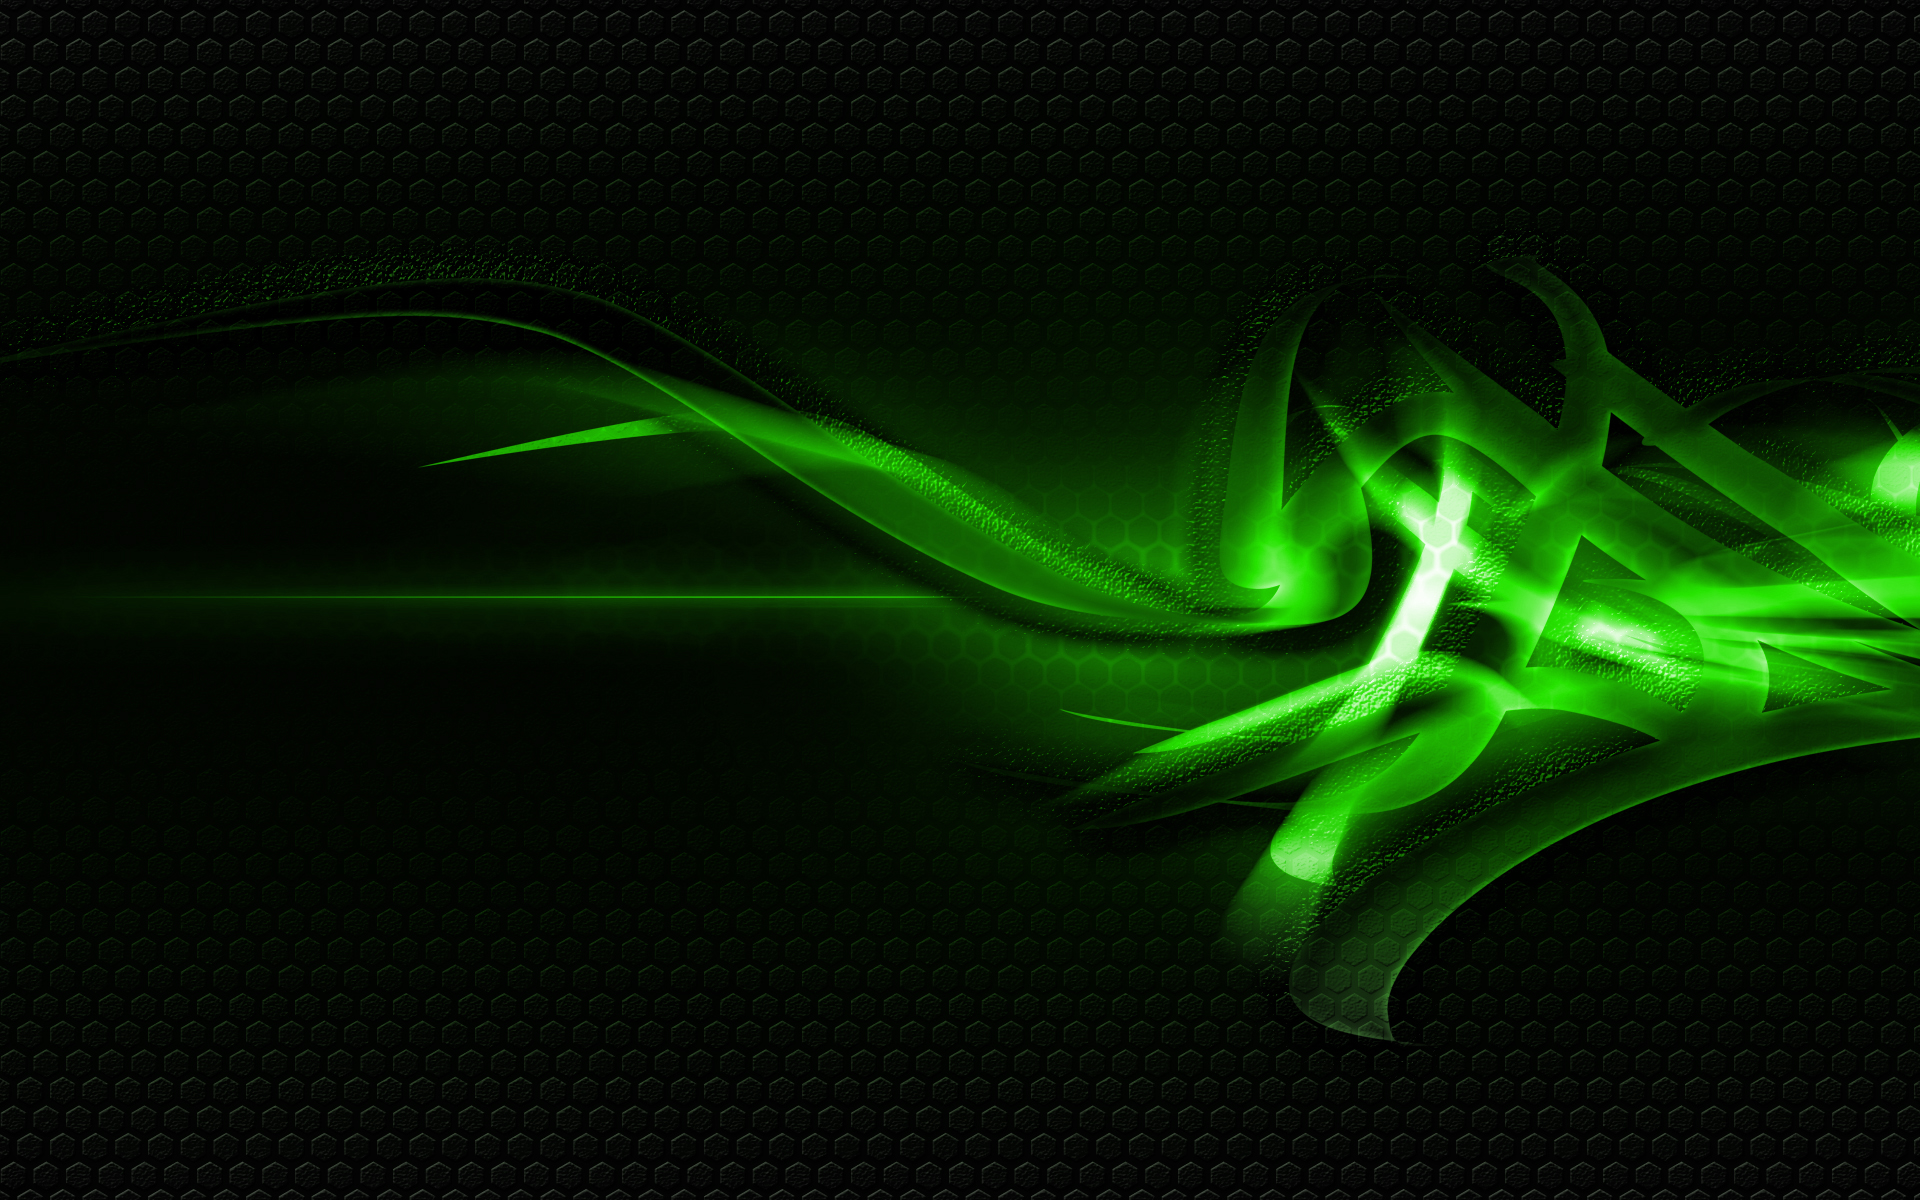 Hd wallpaper green - 2012 Abstract Wallpapers All Images Are Copyrighted By Their